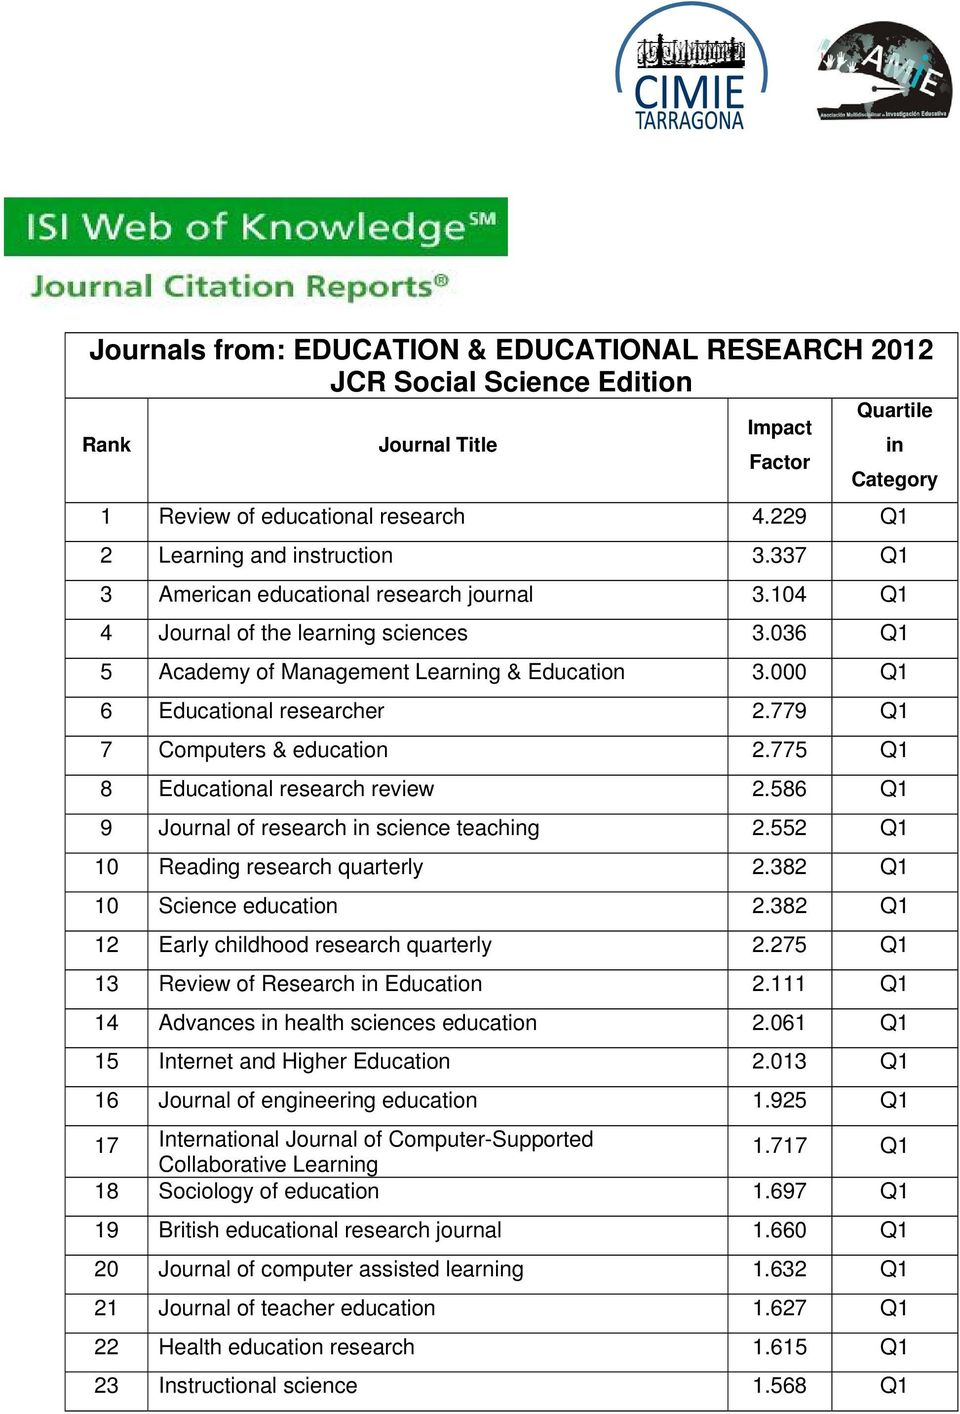 779 Q1 7 Computers & education 2.775 Q1 8 al research review 2.586 Q1 9 Journal of research in science teaching 2.552 Q1 10 Reading research quarterly 2.382 Q1 10 Science education 2.